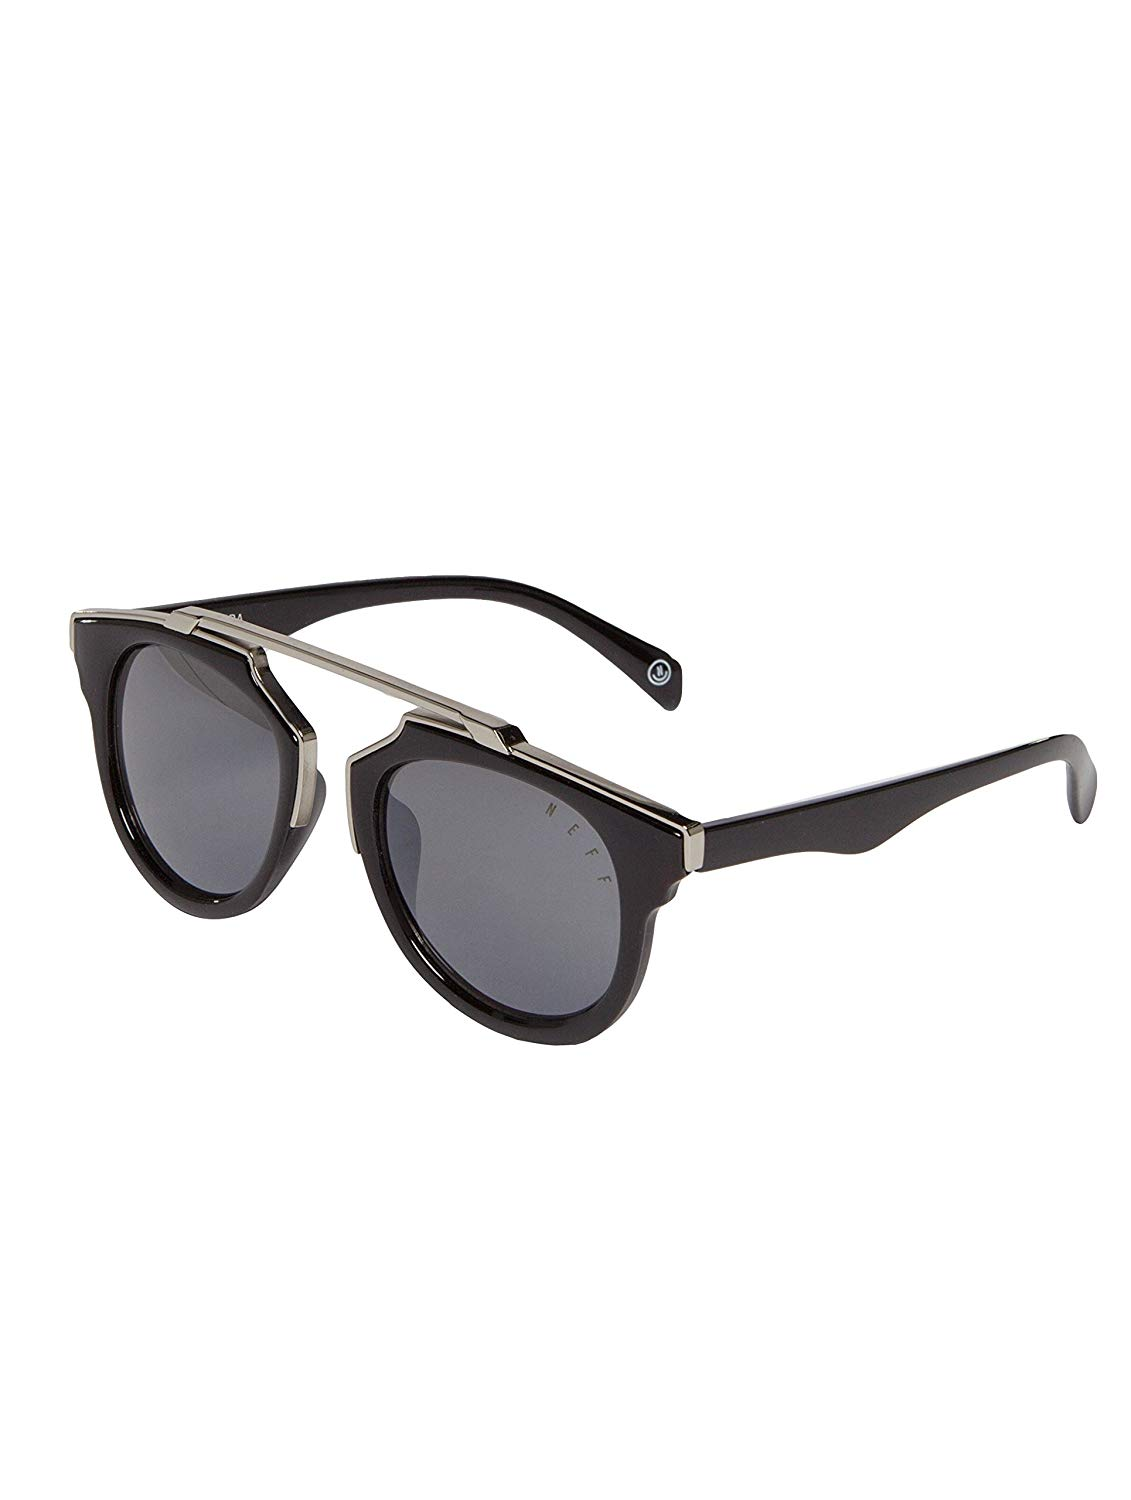 a448bf428e7 Get Quotations · neff Riviera Shades Round Sunglasses